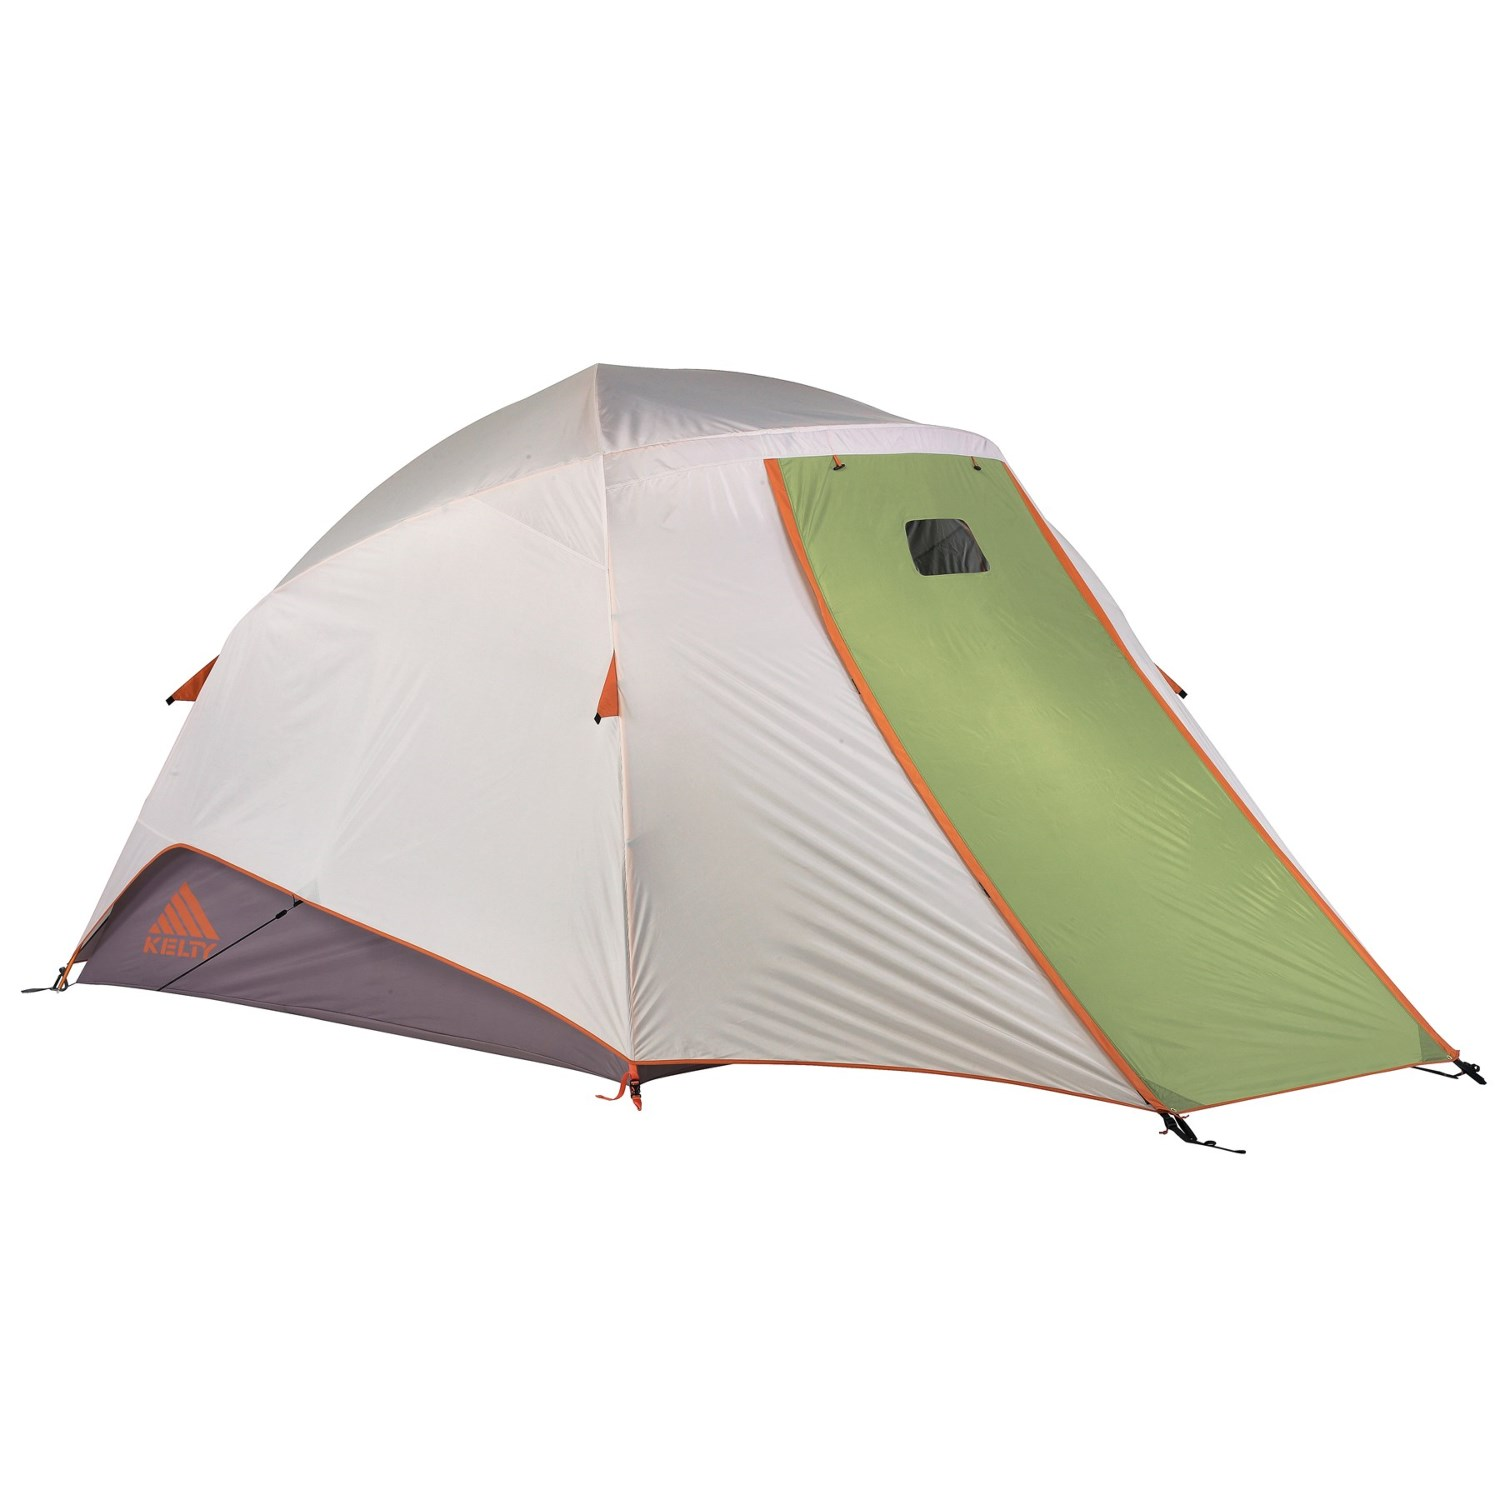 Kelty hula house 6 tent with footprint 6 person 3 Tent a house